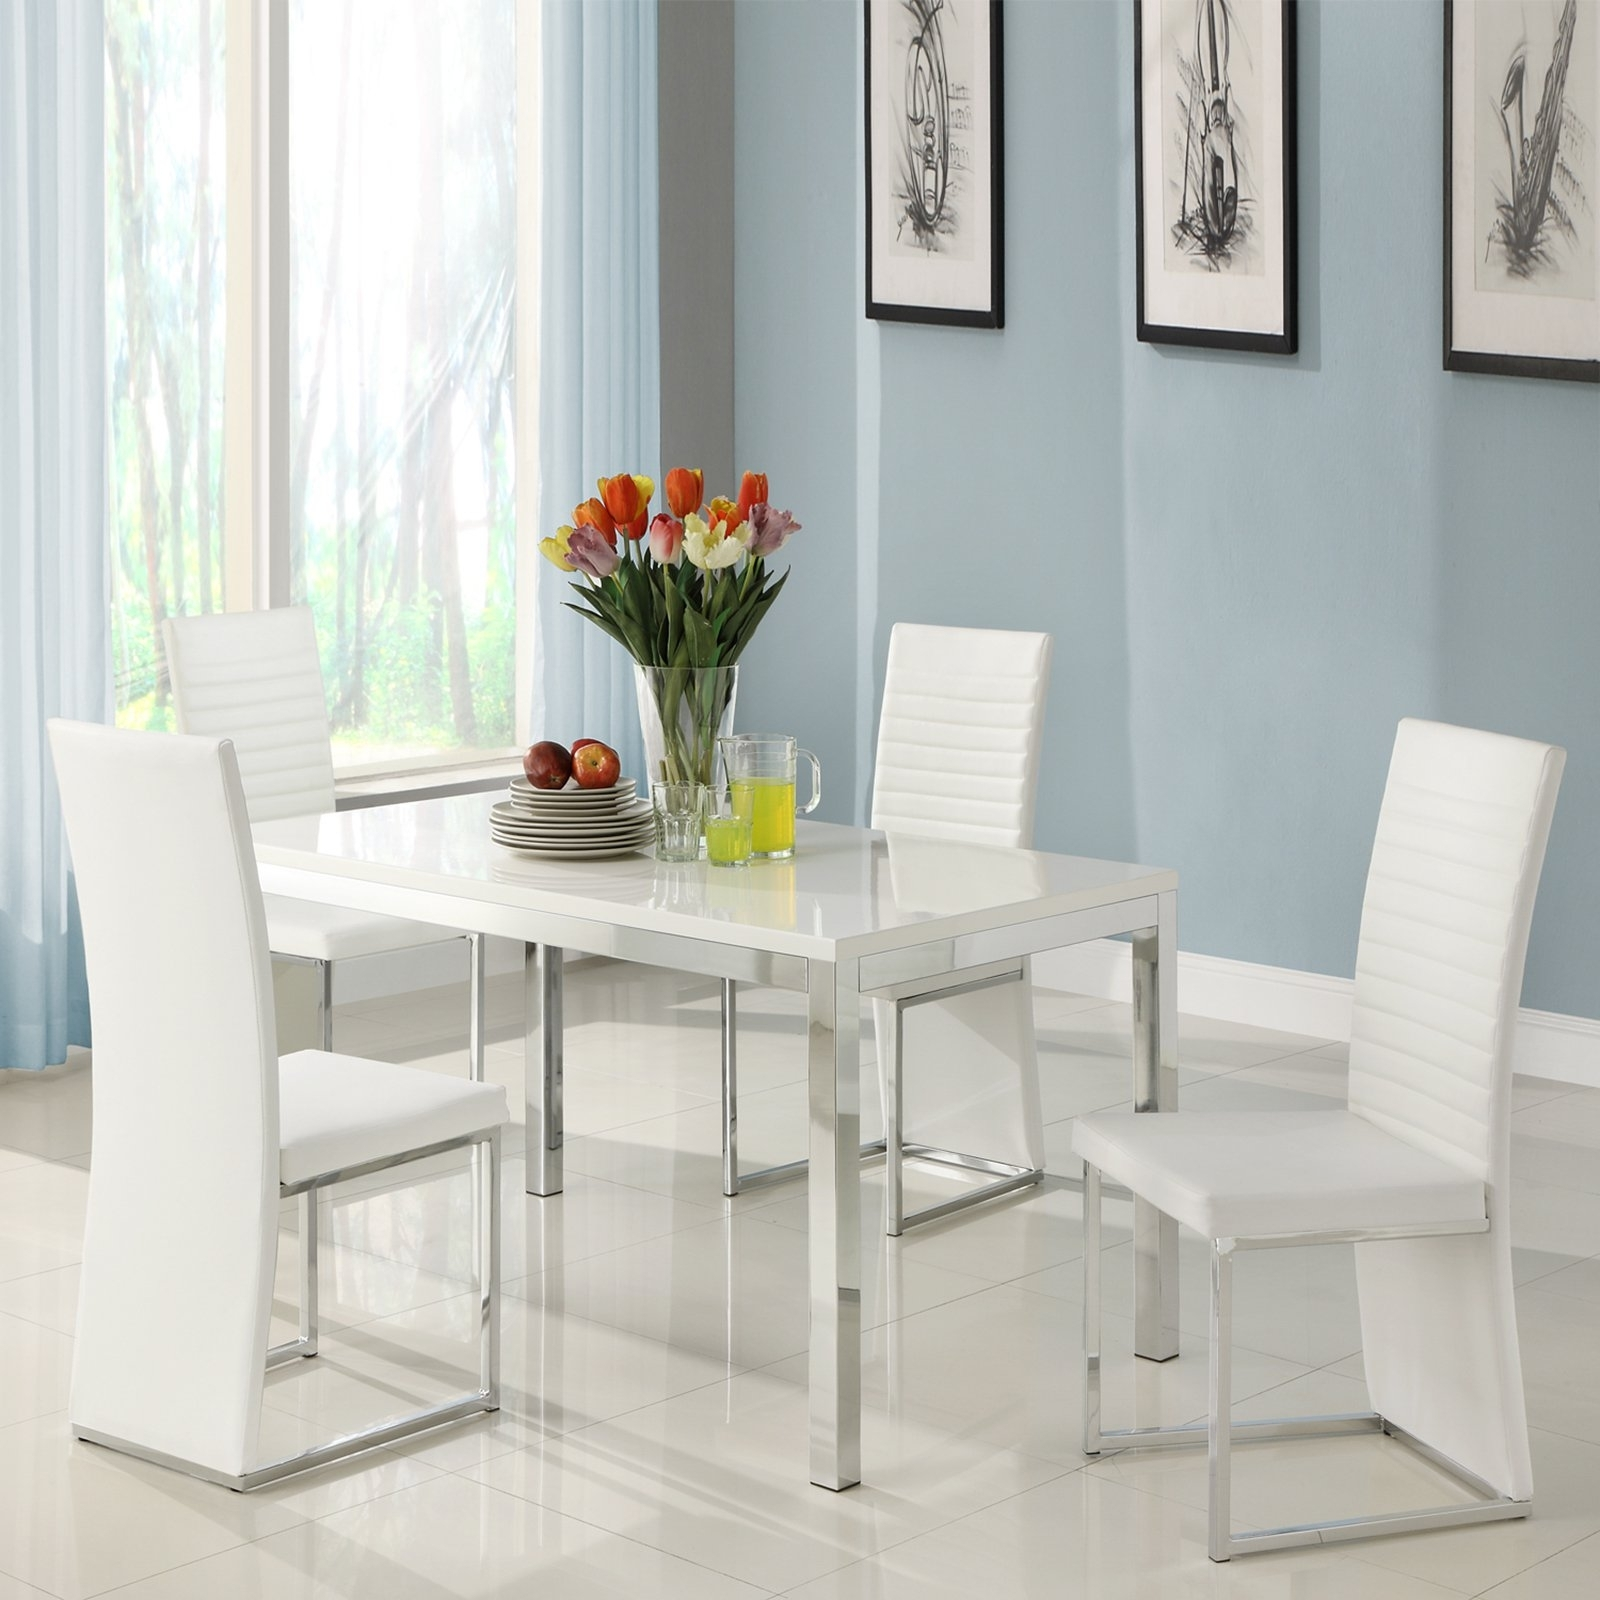 Homelegance Clarice 5 Piece Chrome Dining Table Set – Modern White In Newest Chrome Dining Sets (View 16 of 25)